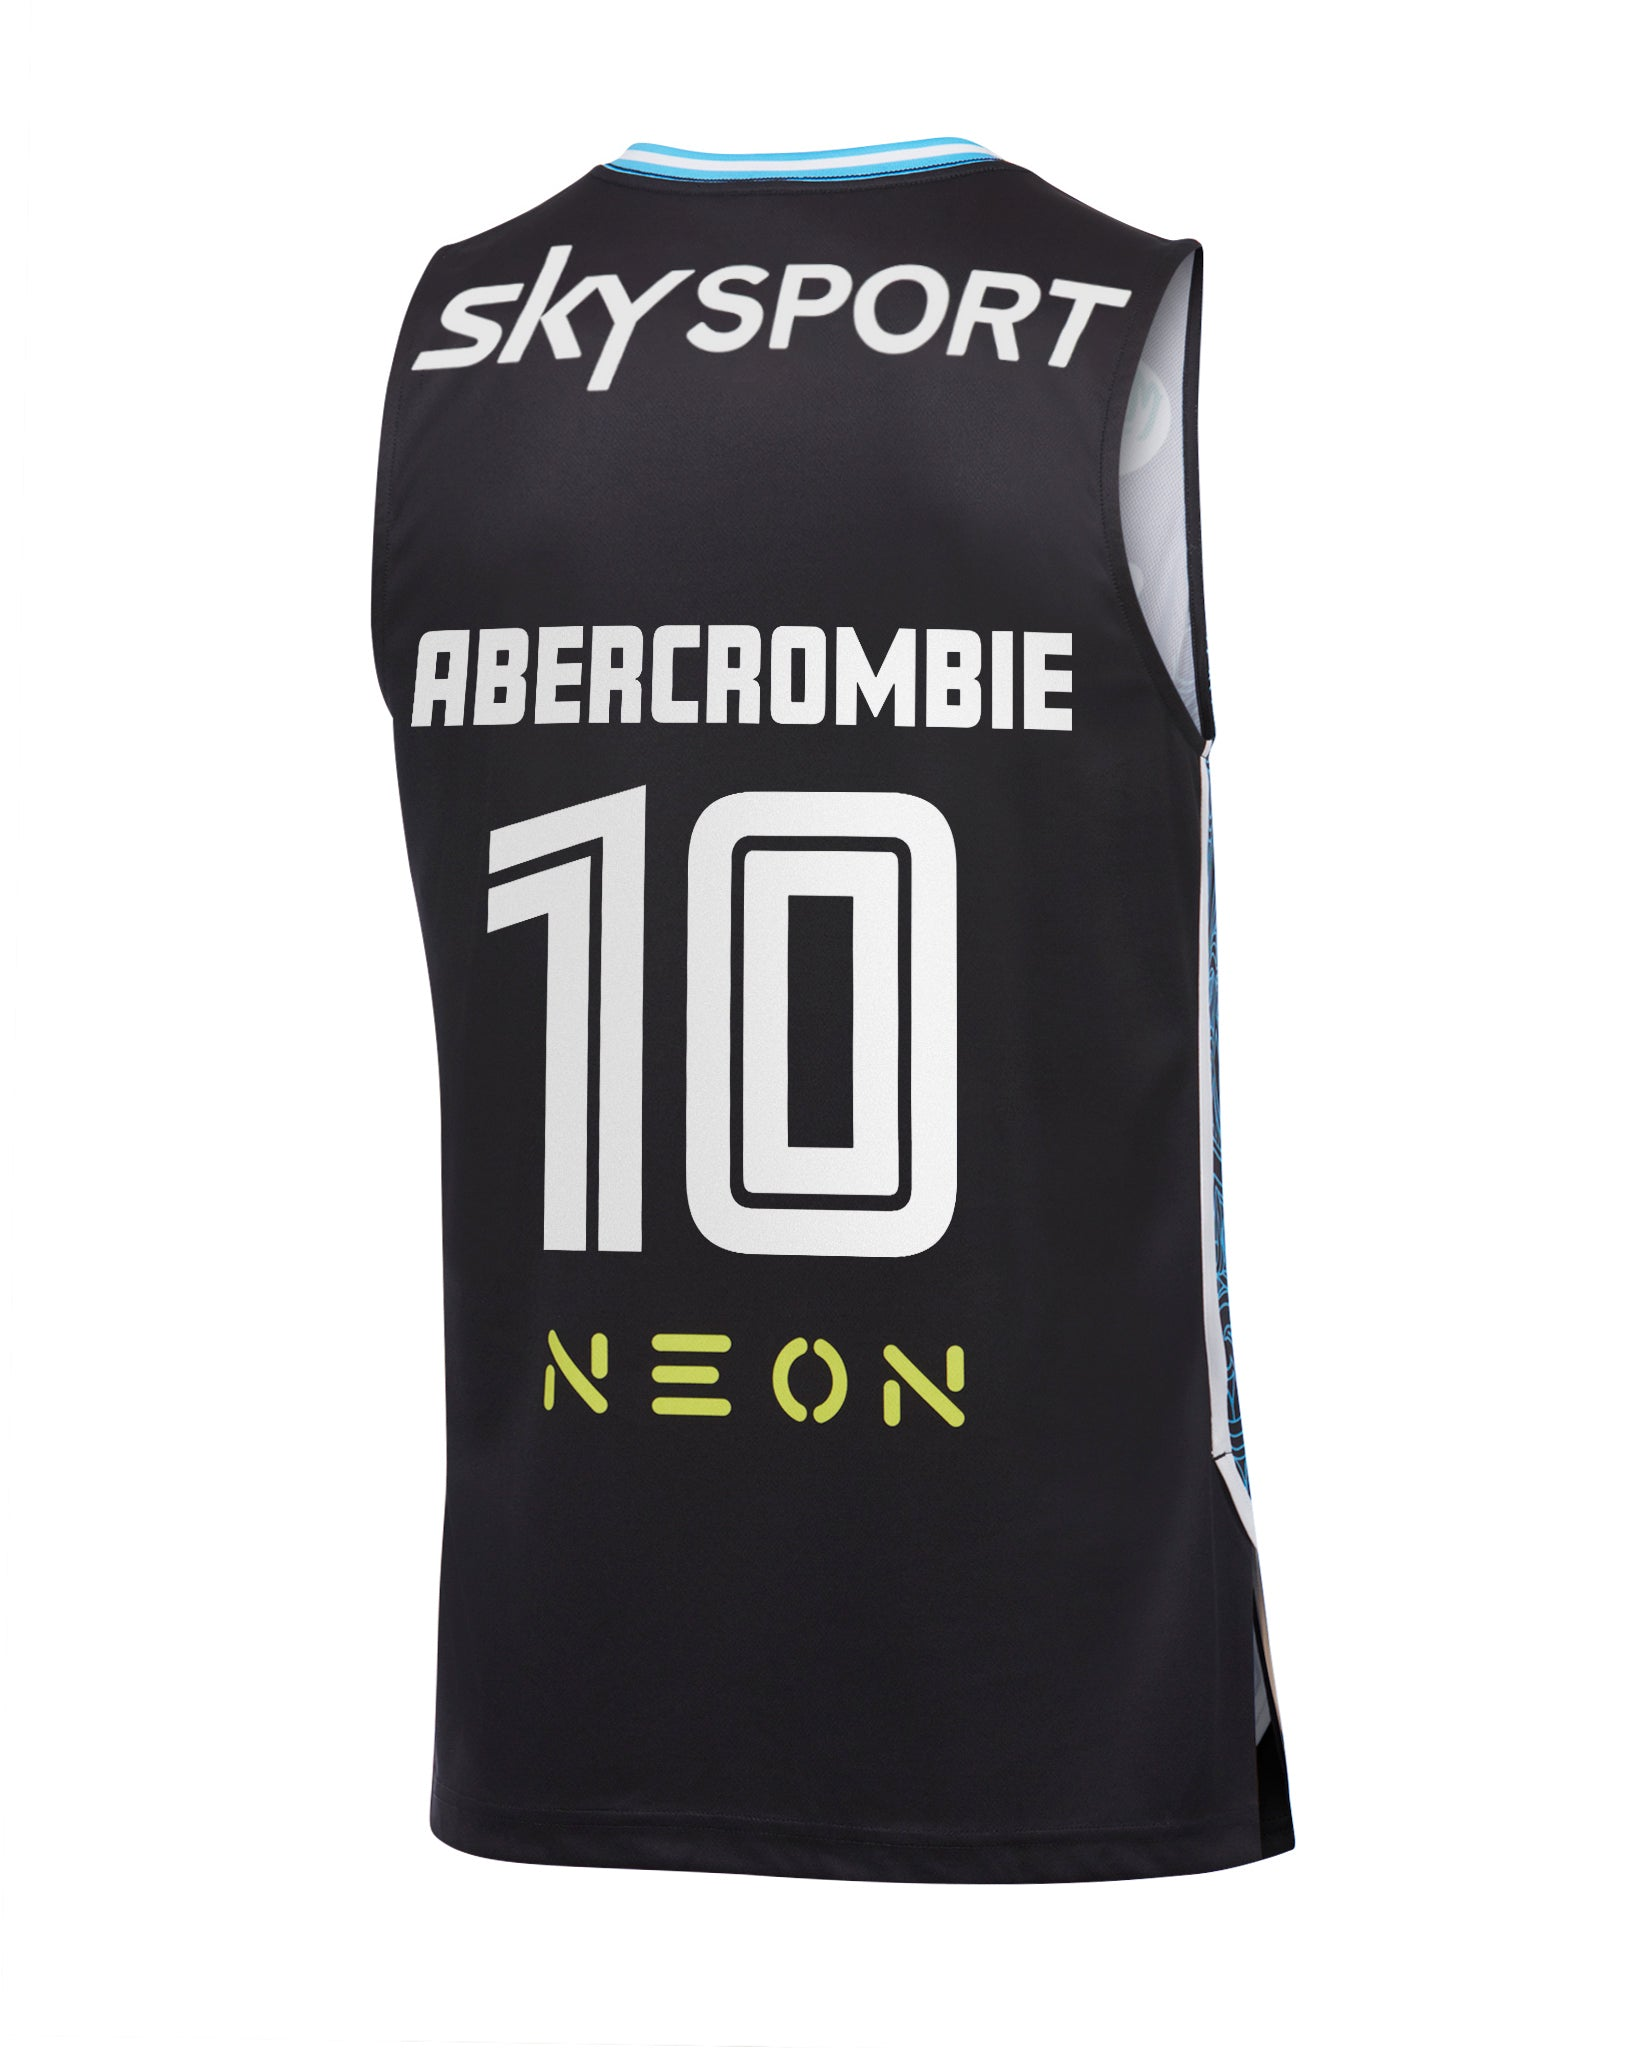 new-zealand-breakers-19-20-authentic-home-jersey-tom-abercrombie - Back Image